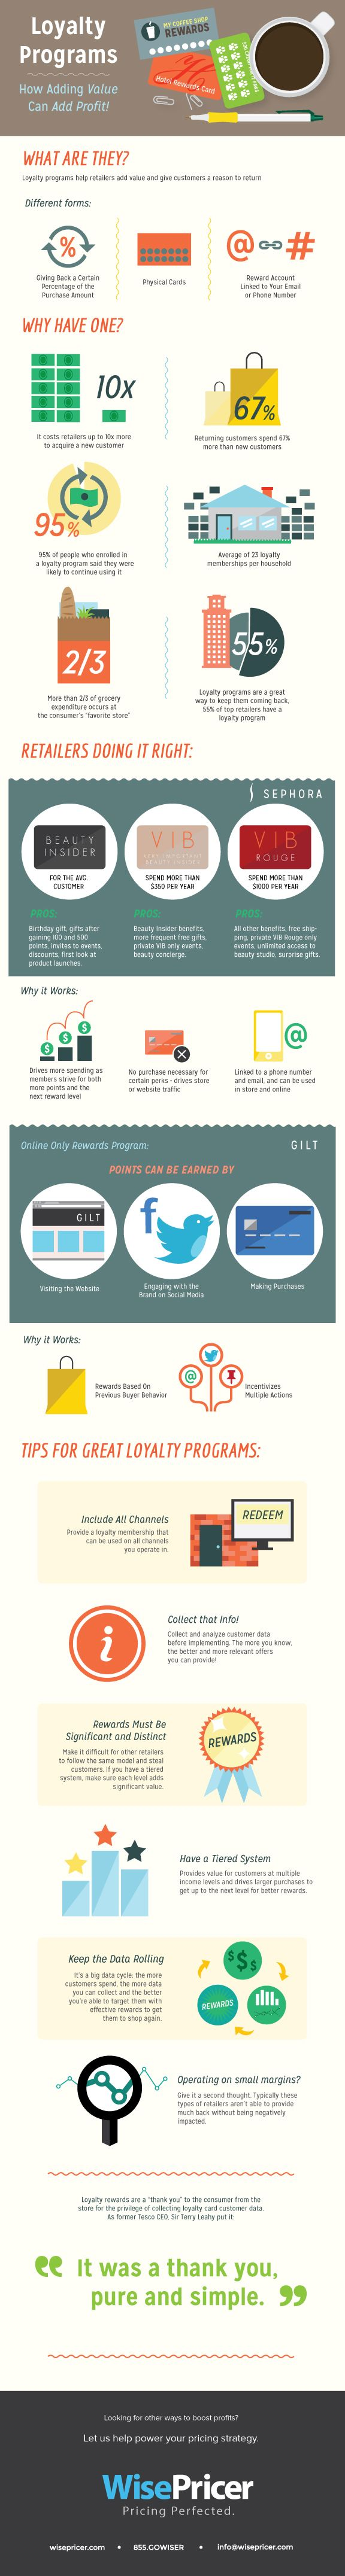 17 best Loyalty program images on Pinterest | Loyalty, Customer ...